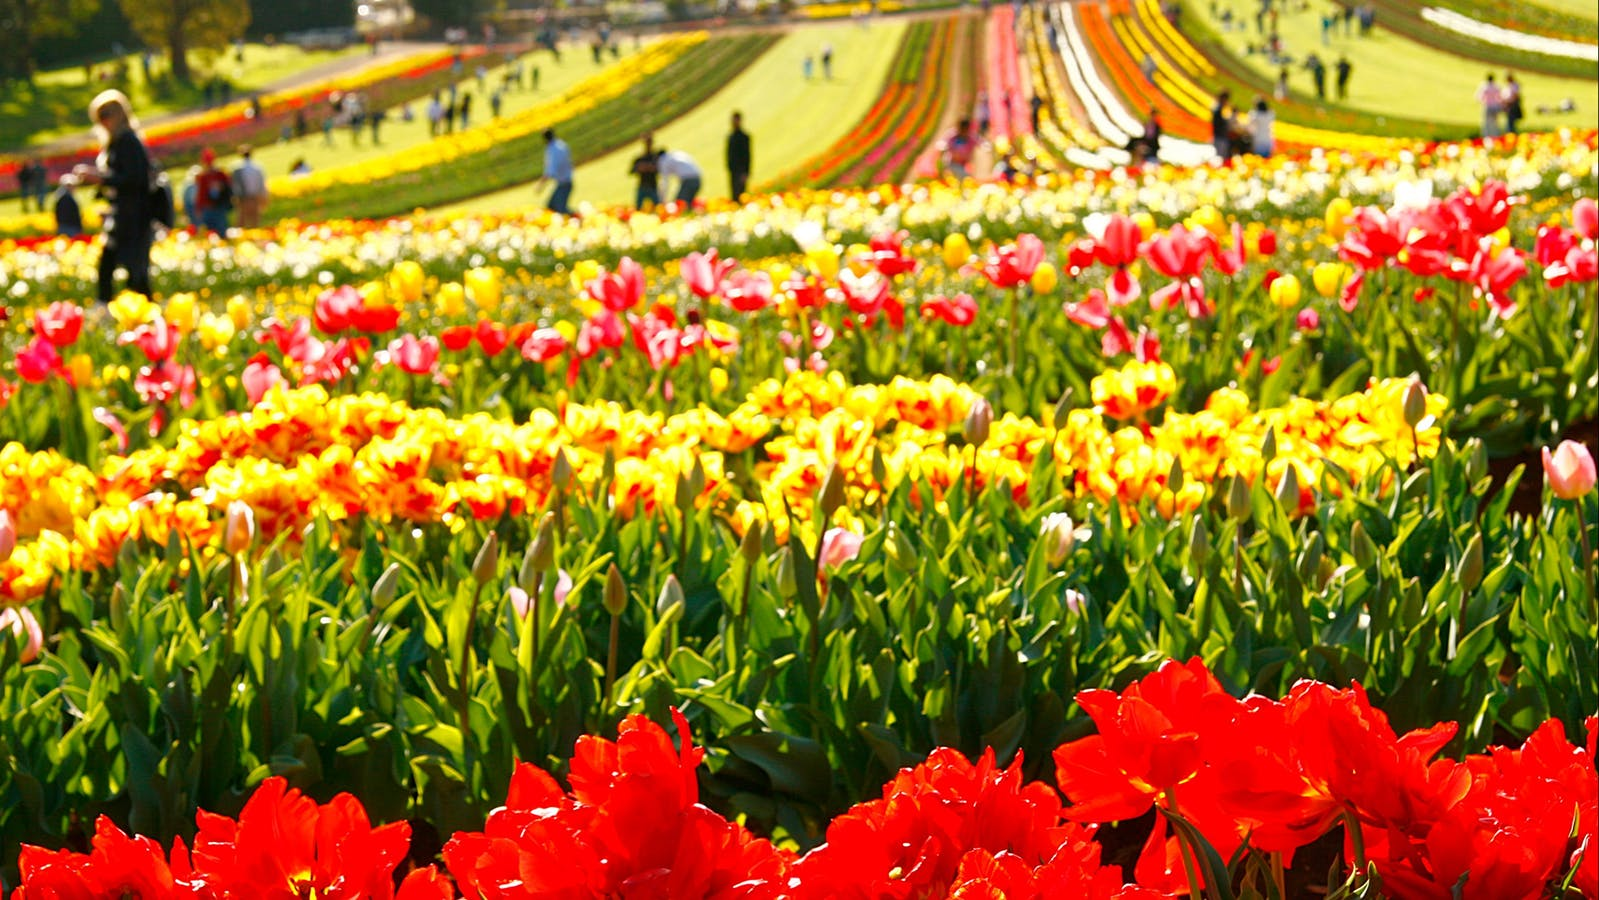 Almost a million tulips to dazzle you.